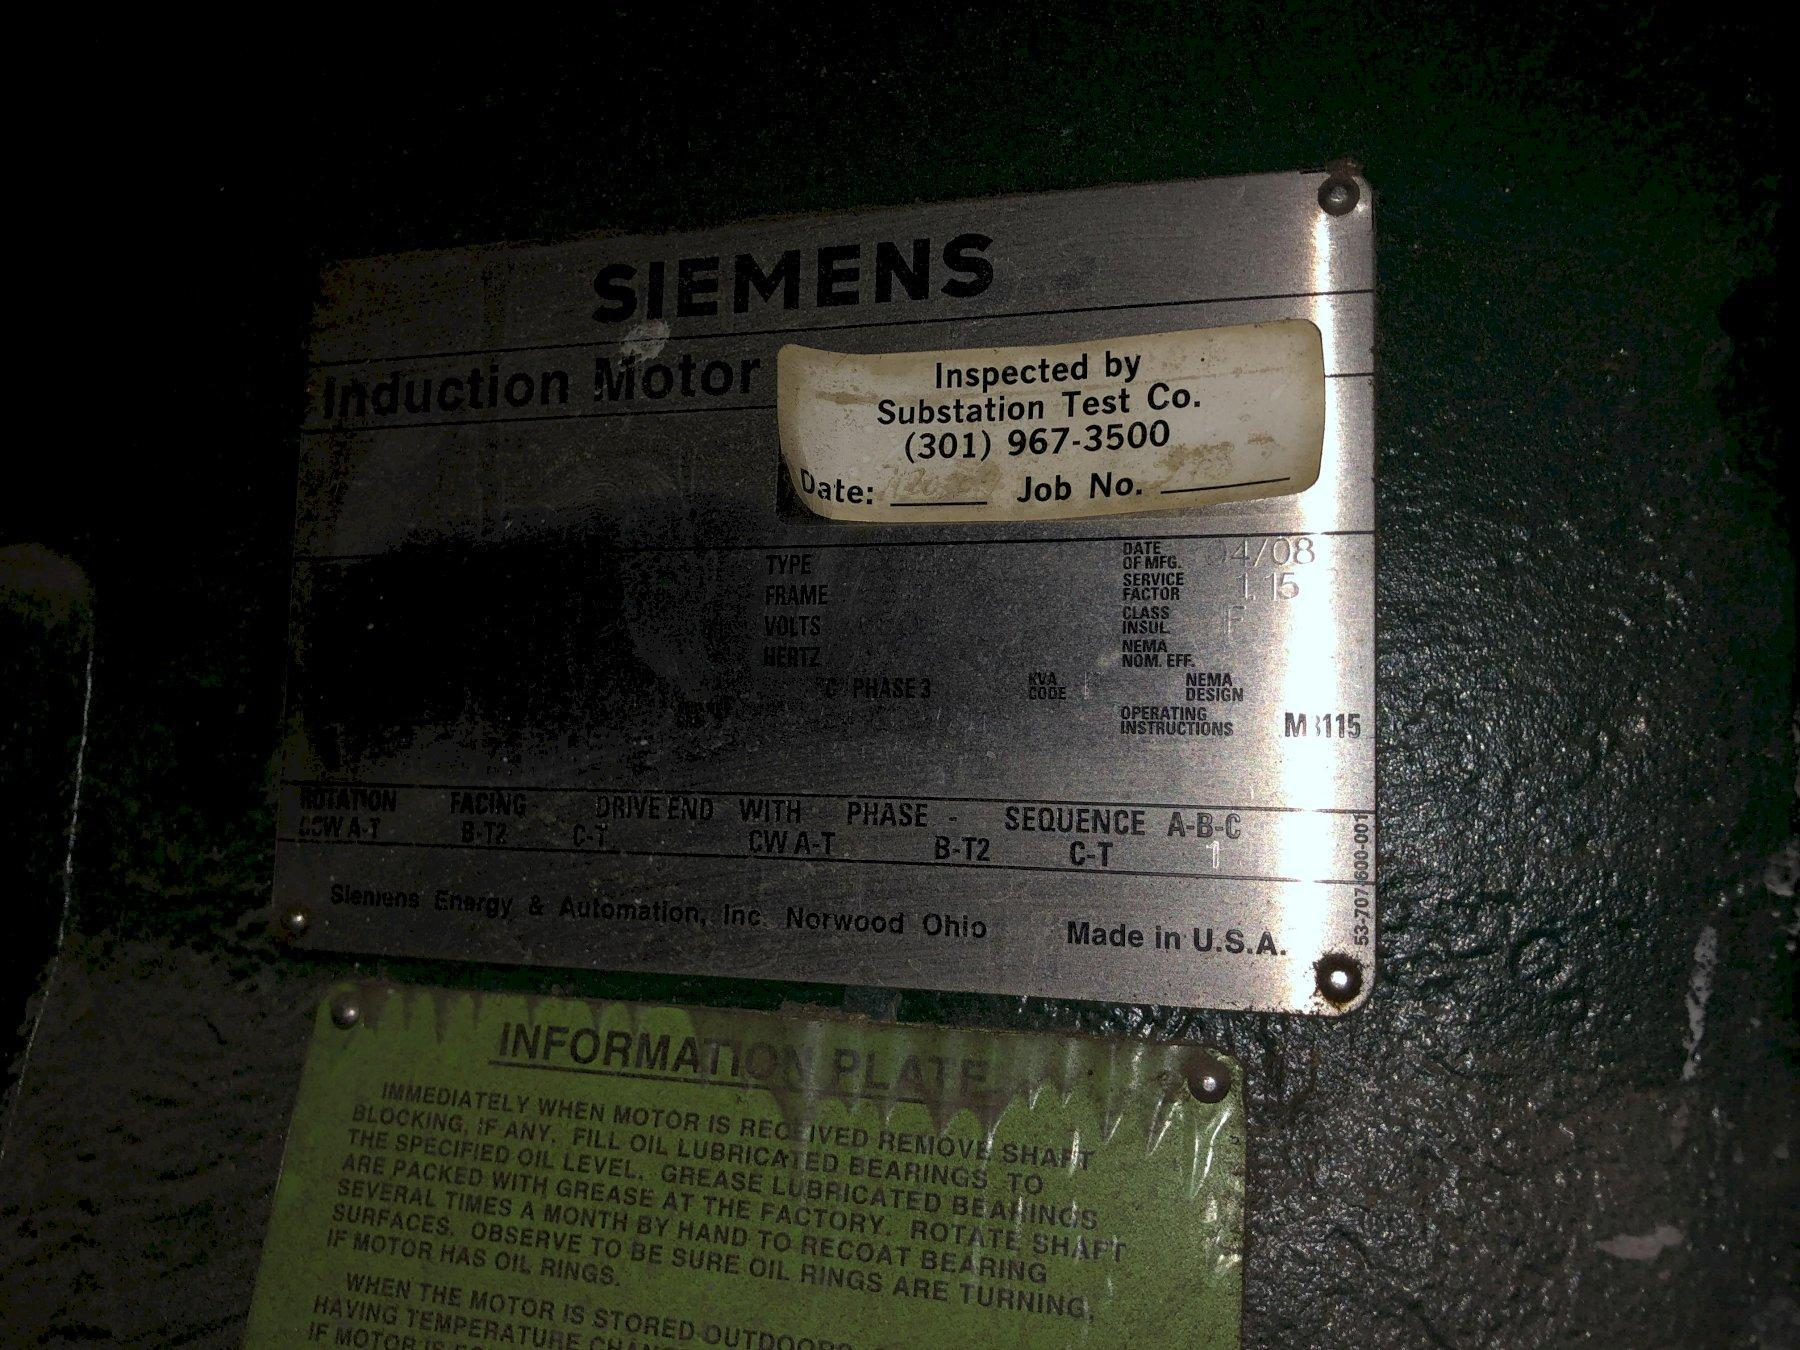 2008 recycle blower system with Siemens 1750 hp motor 6600 volt s/n 079172?020-1, Falk dolrs-gear-ooo2e gearbox, Harman 800gsl blower model 80tycsleaa s/n hds299??